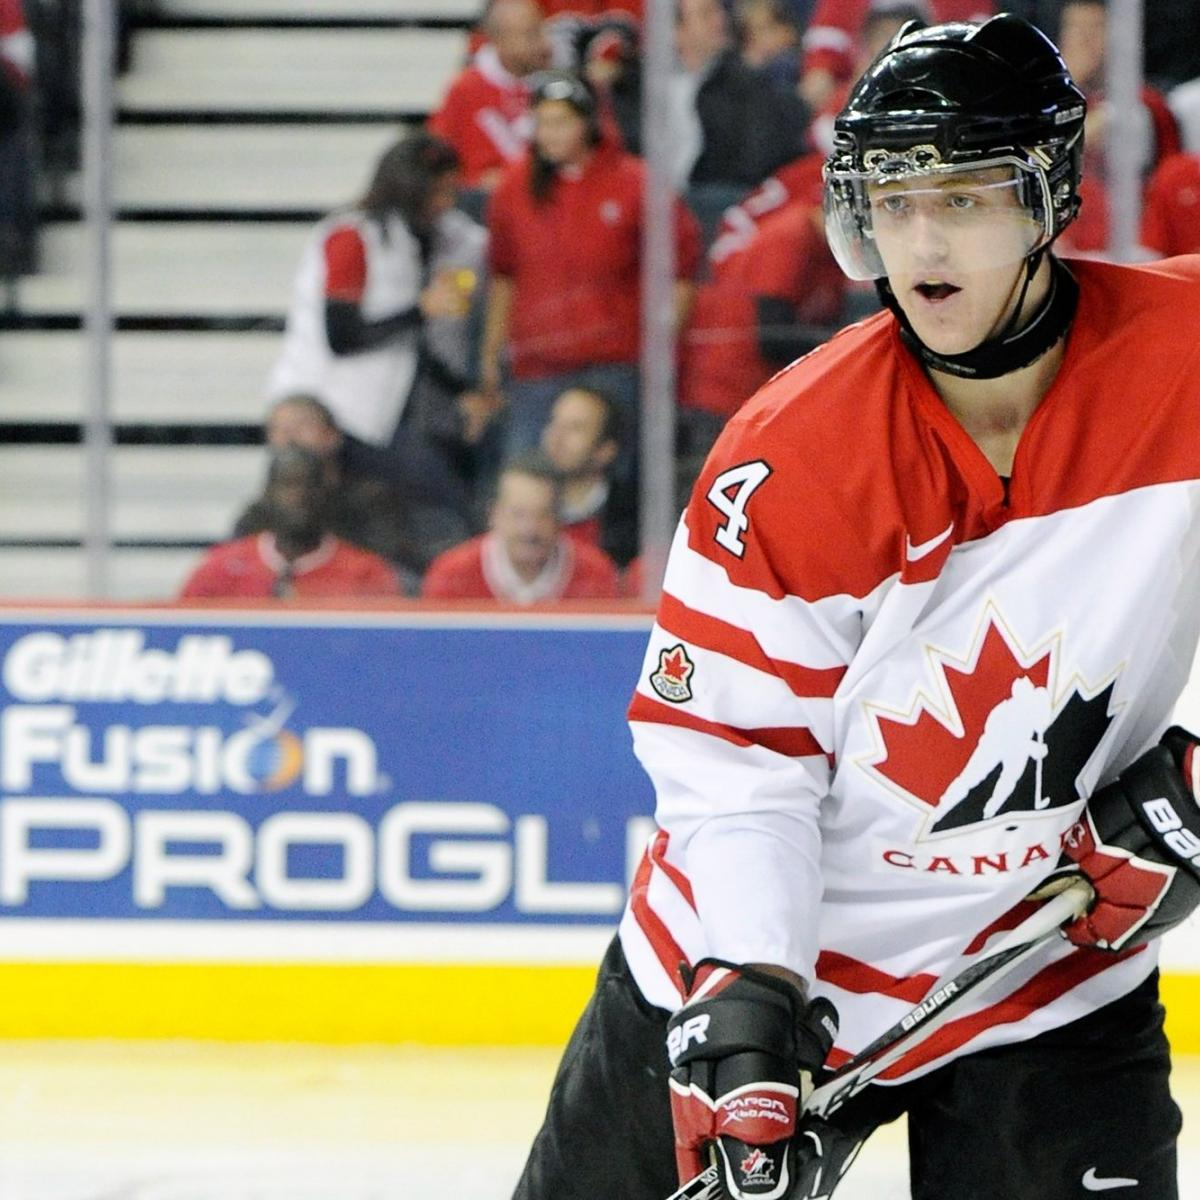 3 Boston Bruins Prospects Named To Team Canada For World